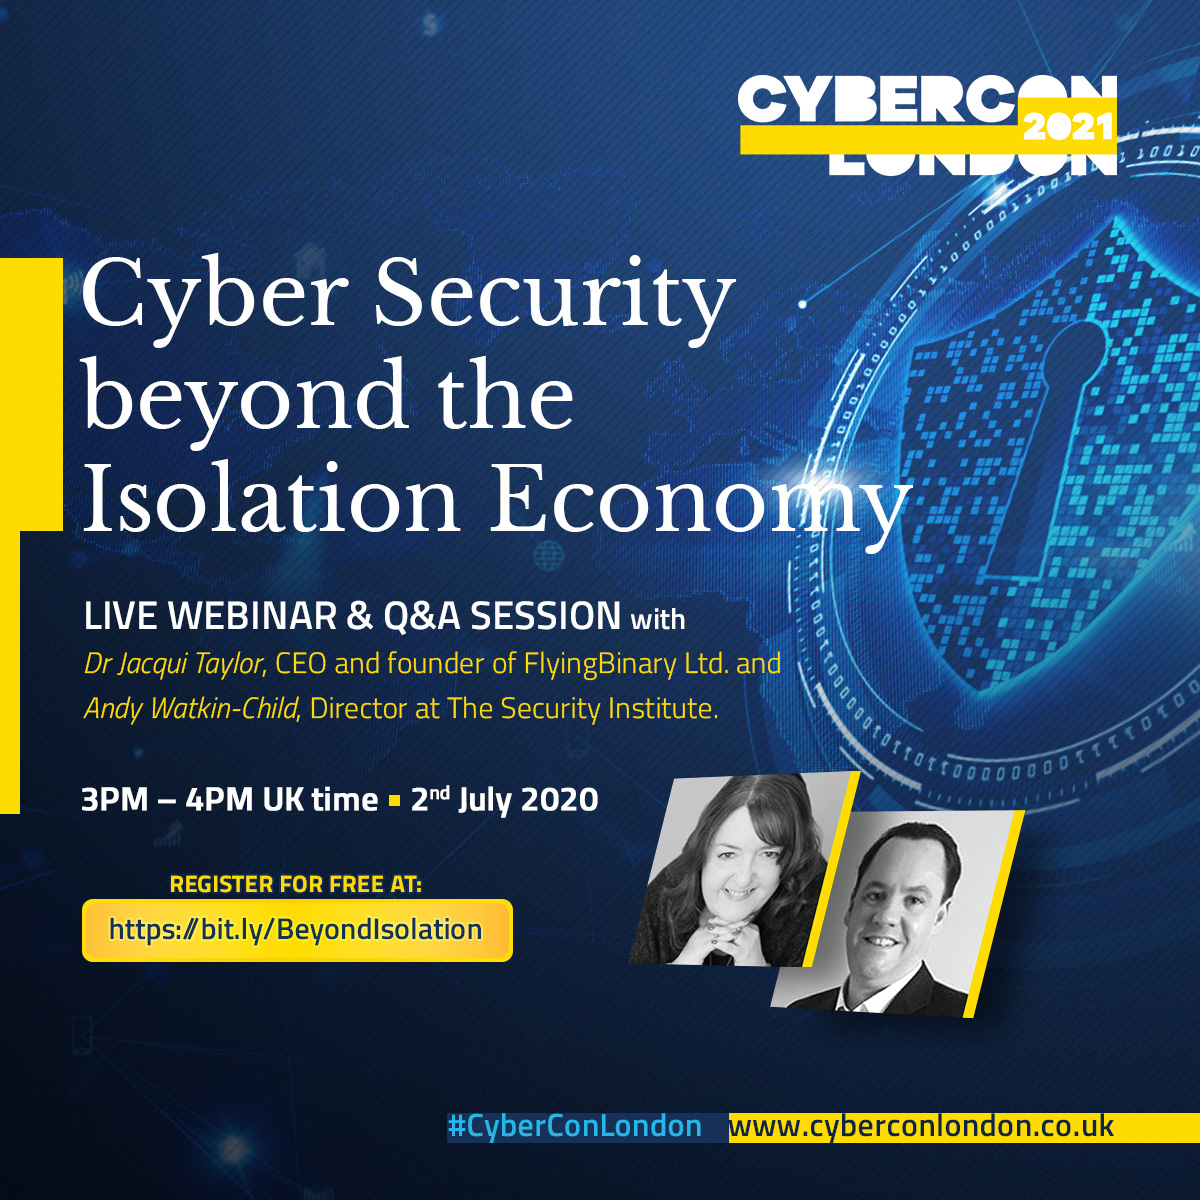 Cyber Security beyond the Isolation Economy